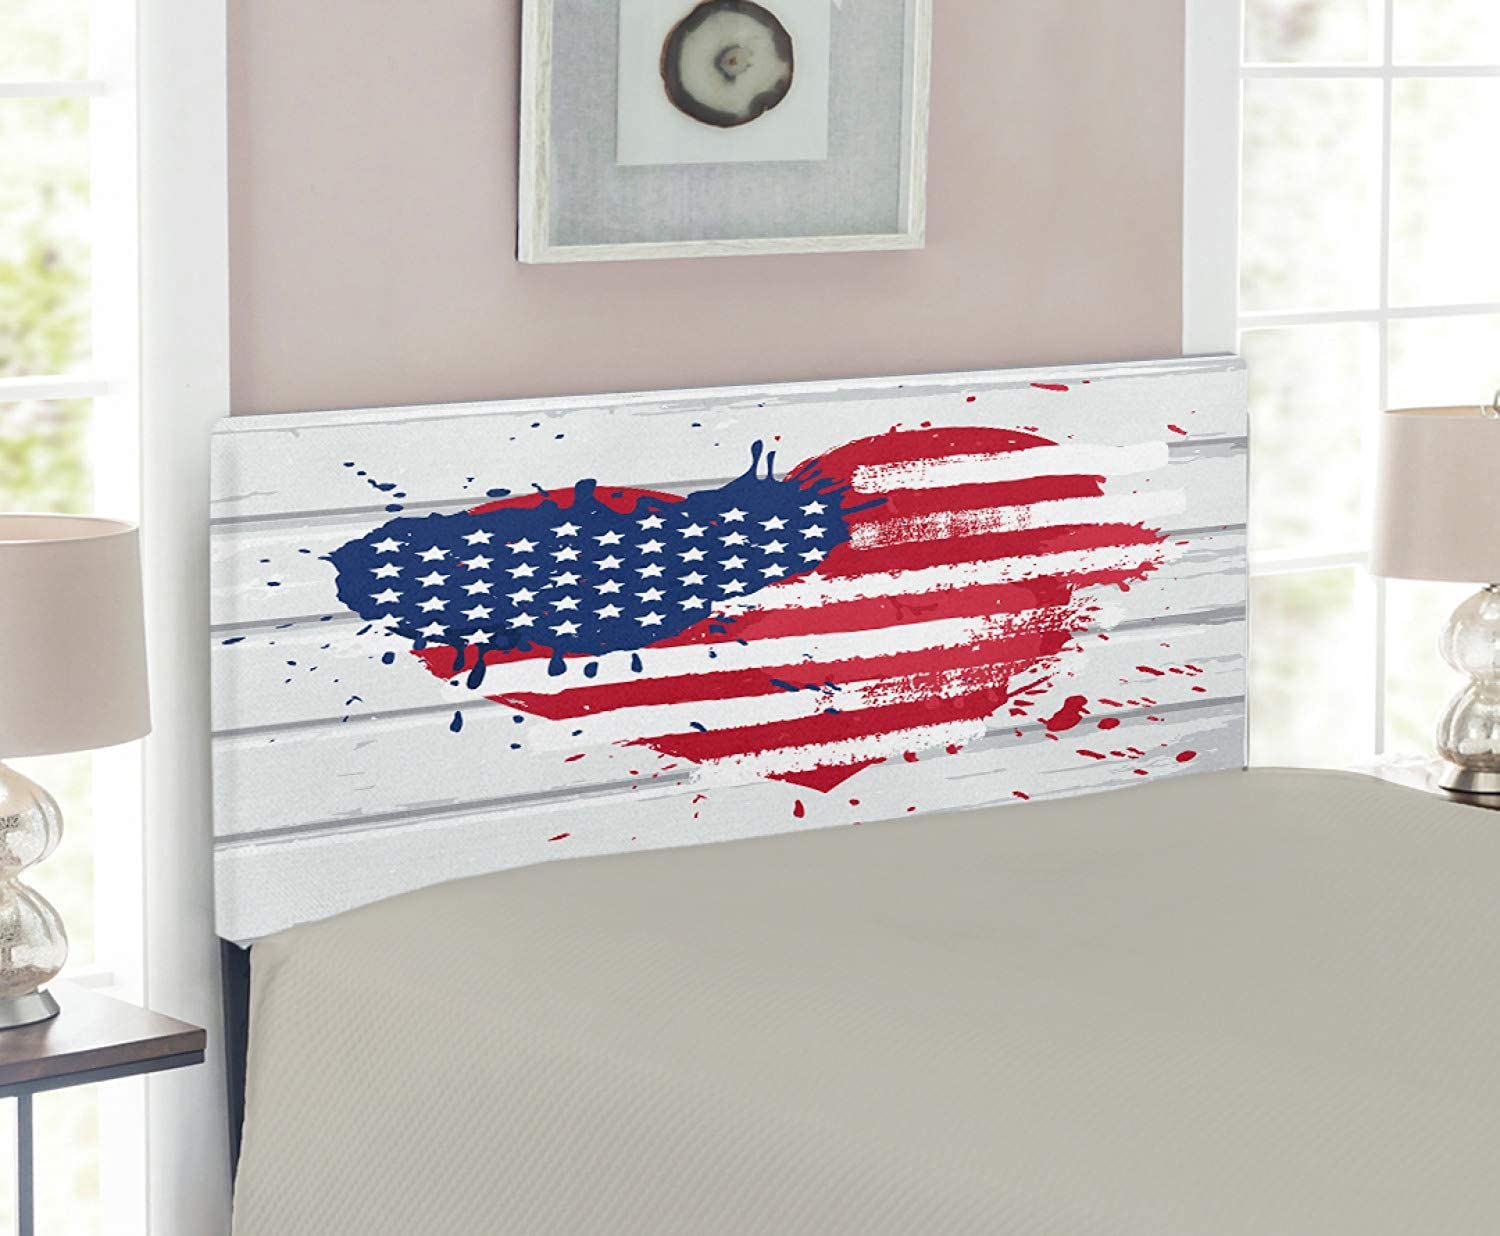 Lunarable Americana Headboard for Twin Size Bed, USA Flag in Heart Shape on Wood Holiday Splattered Grunge Style Illustration, Upholstered Decorative Metal Headboard with Memory Foam, Cream Red bluee